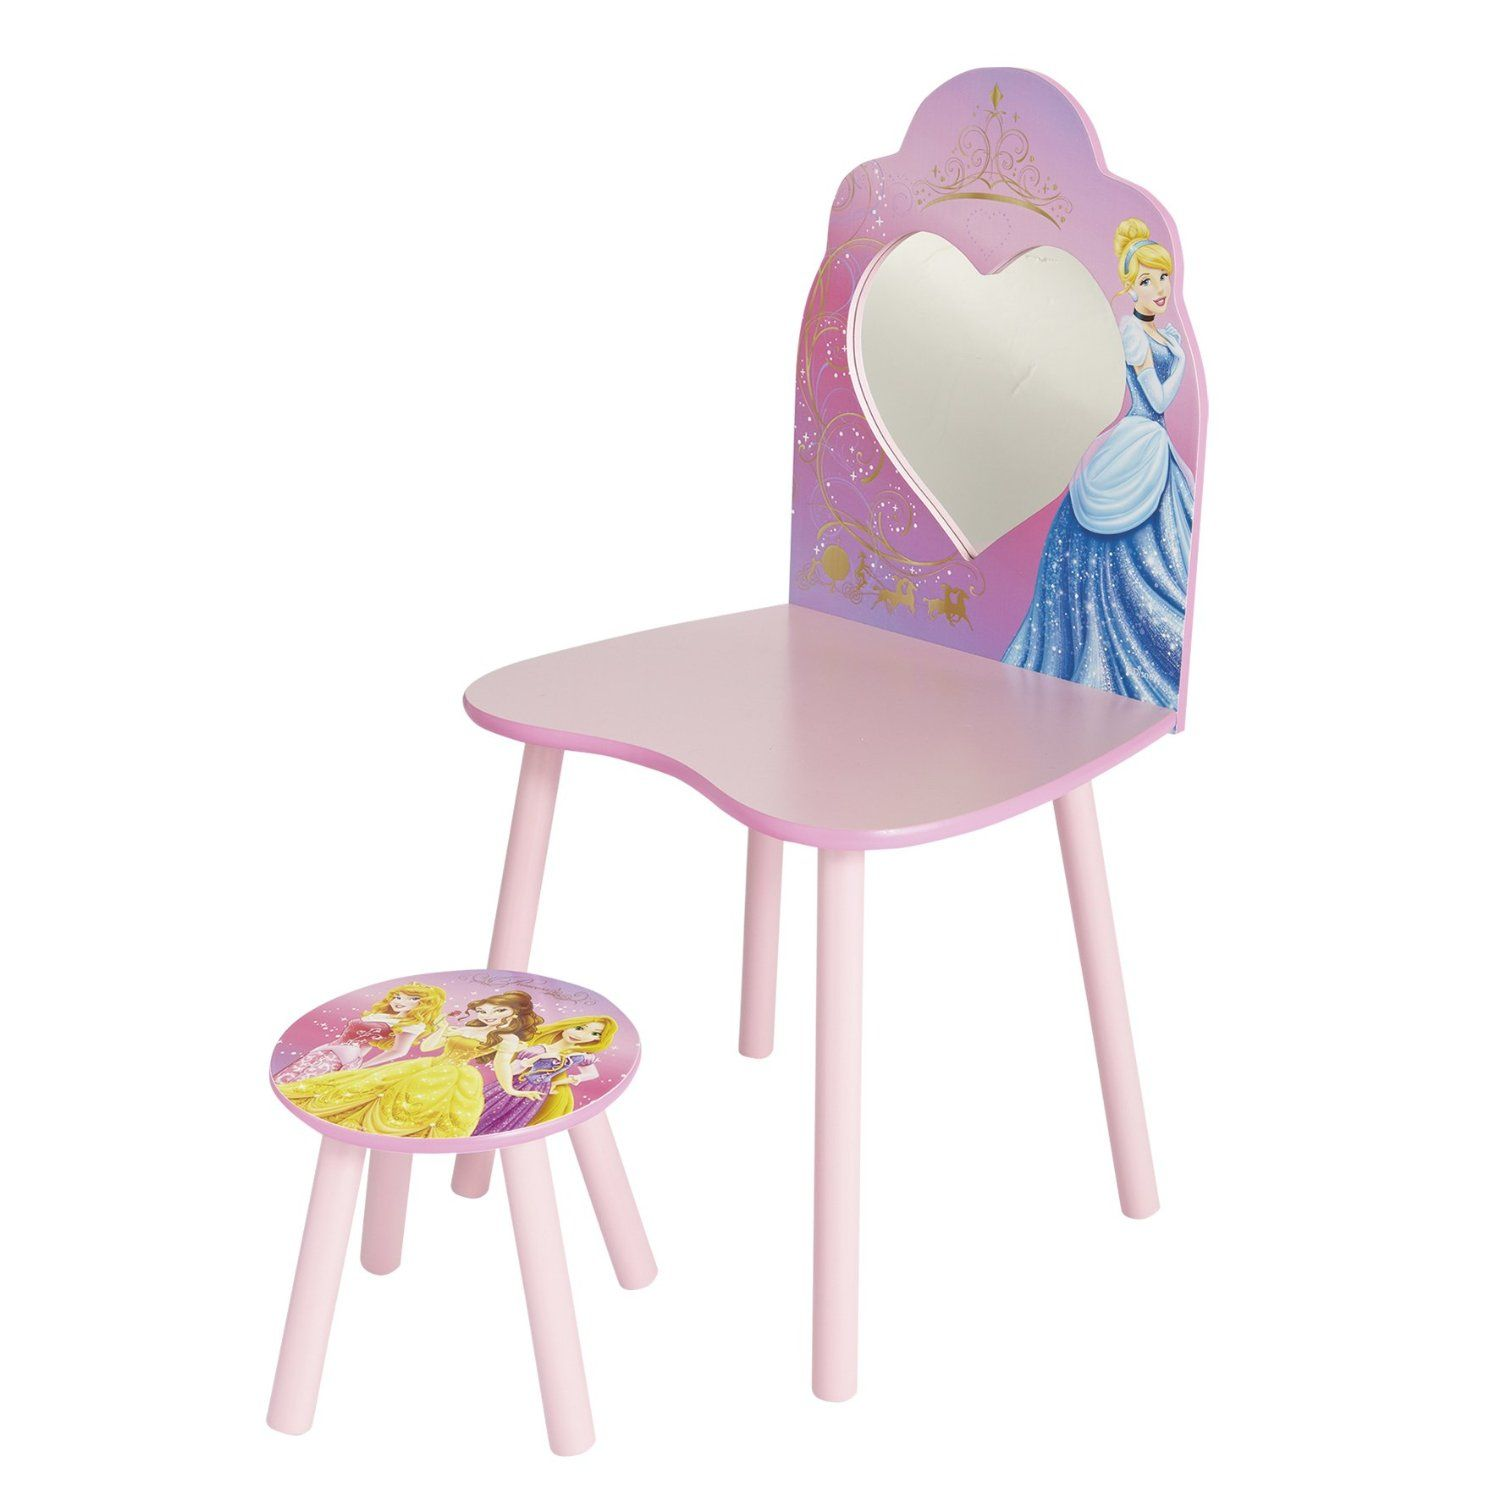 Muebles de princesas disney latest image cinderella for Muebles de princesas